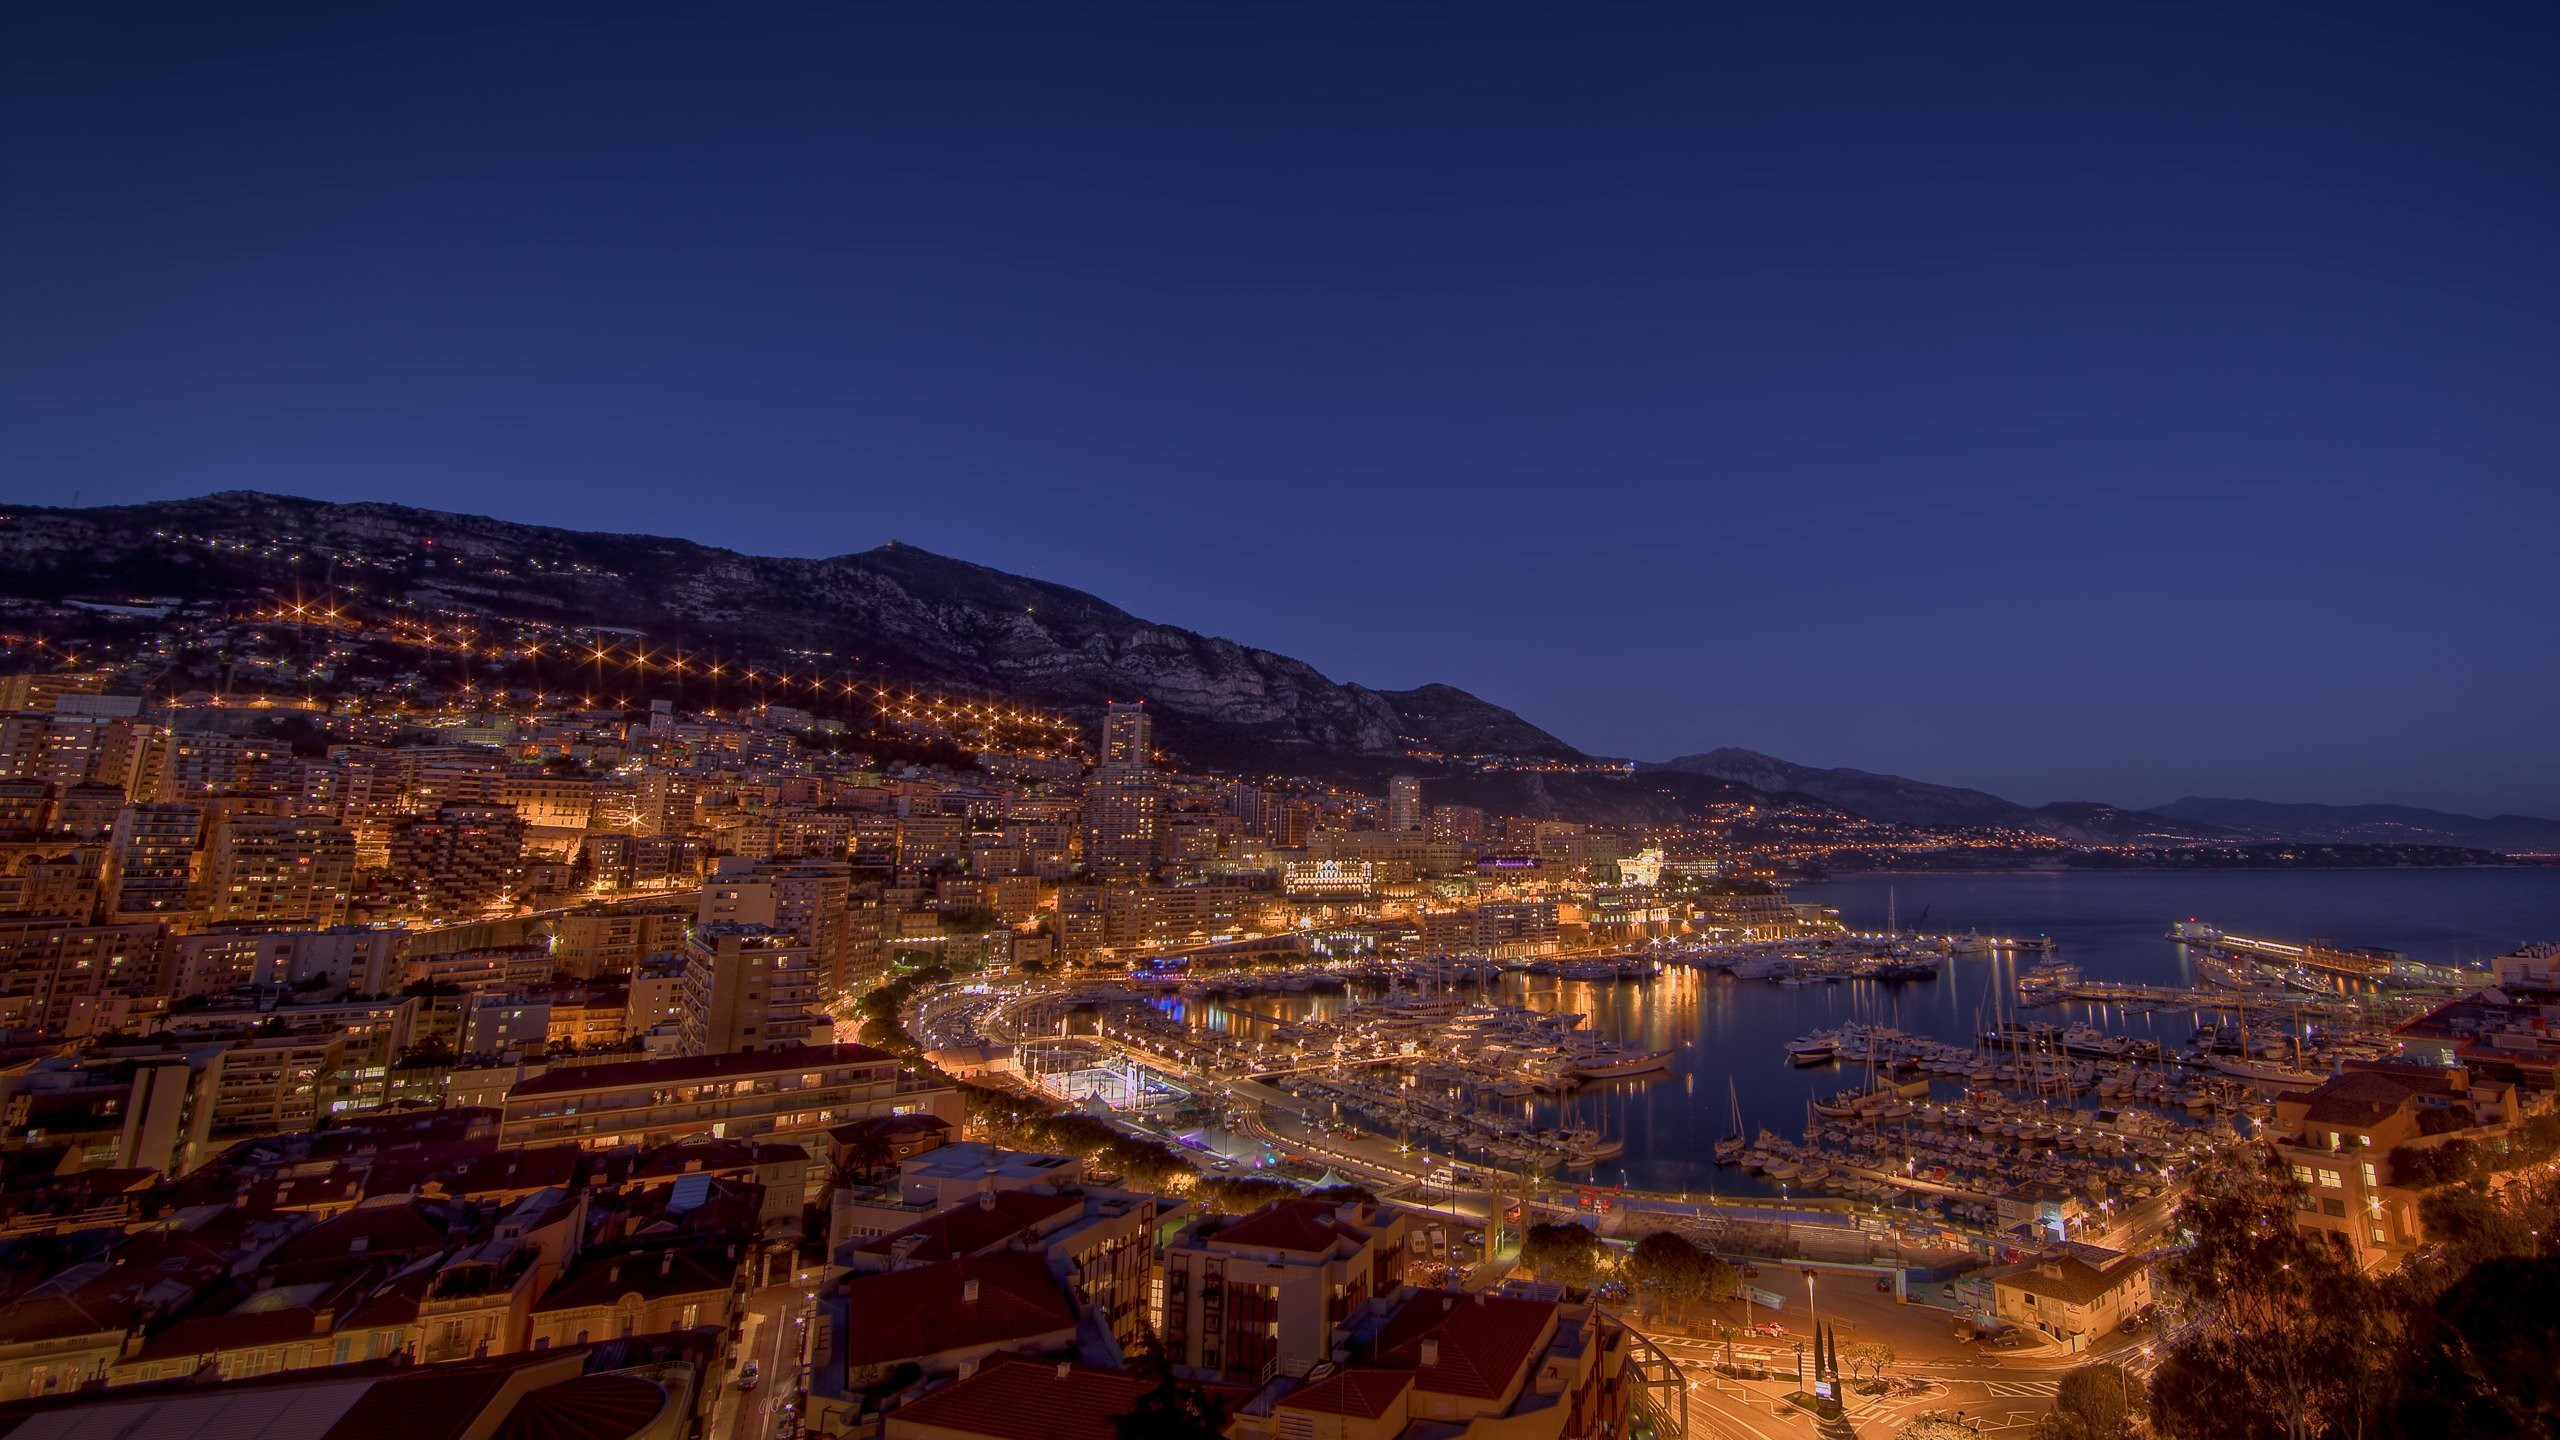 2560x1440 wallpaper.wiki-El-Salvador-Wallpapers-HD-Computer-PIC-